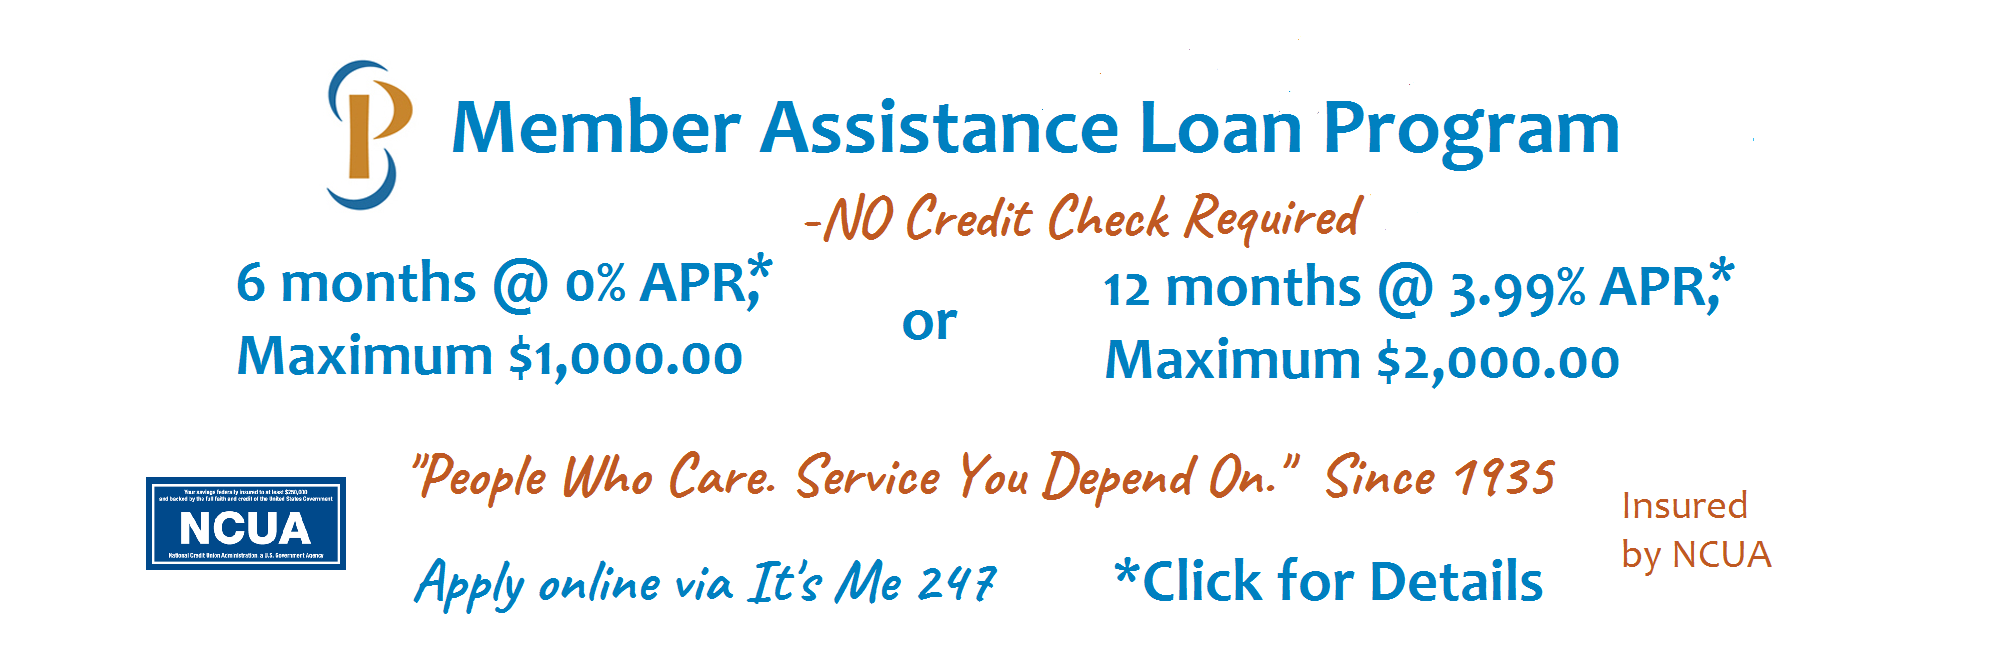 Member Assistance Loan Program